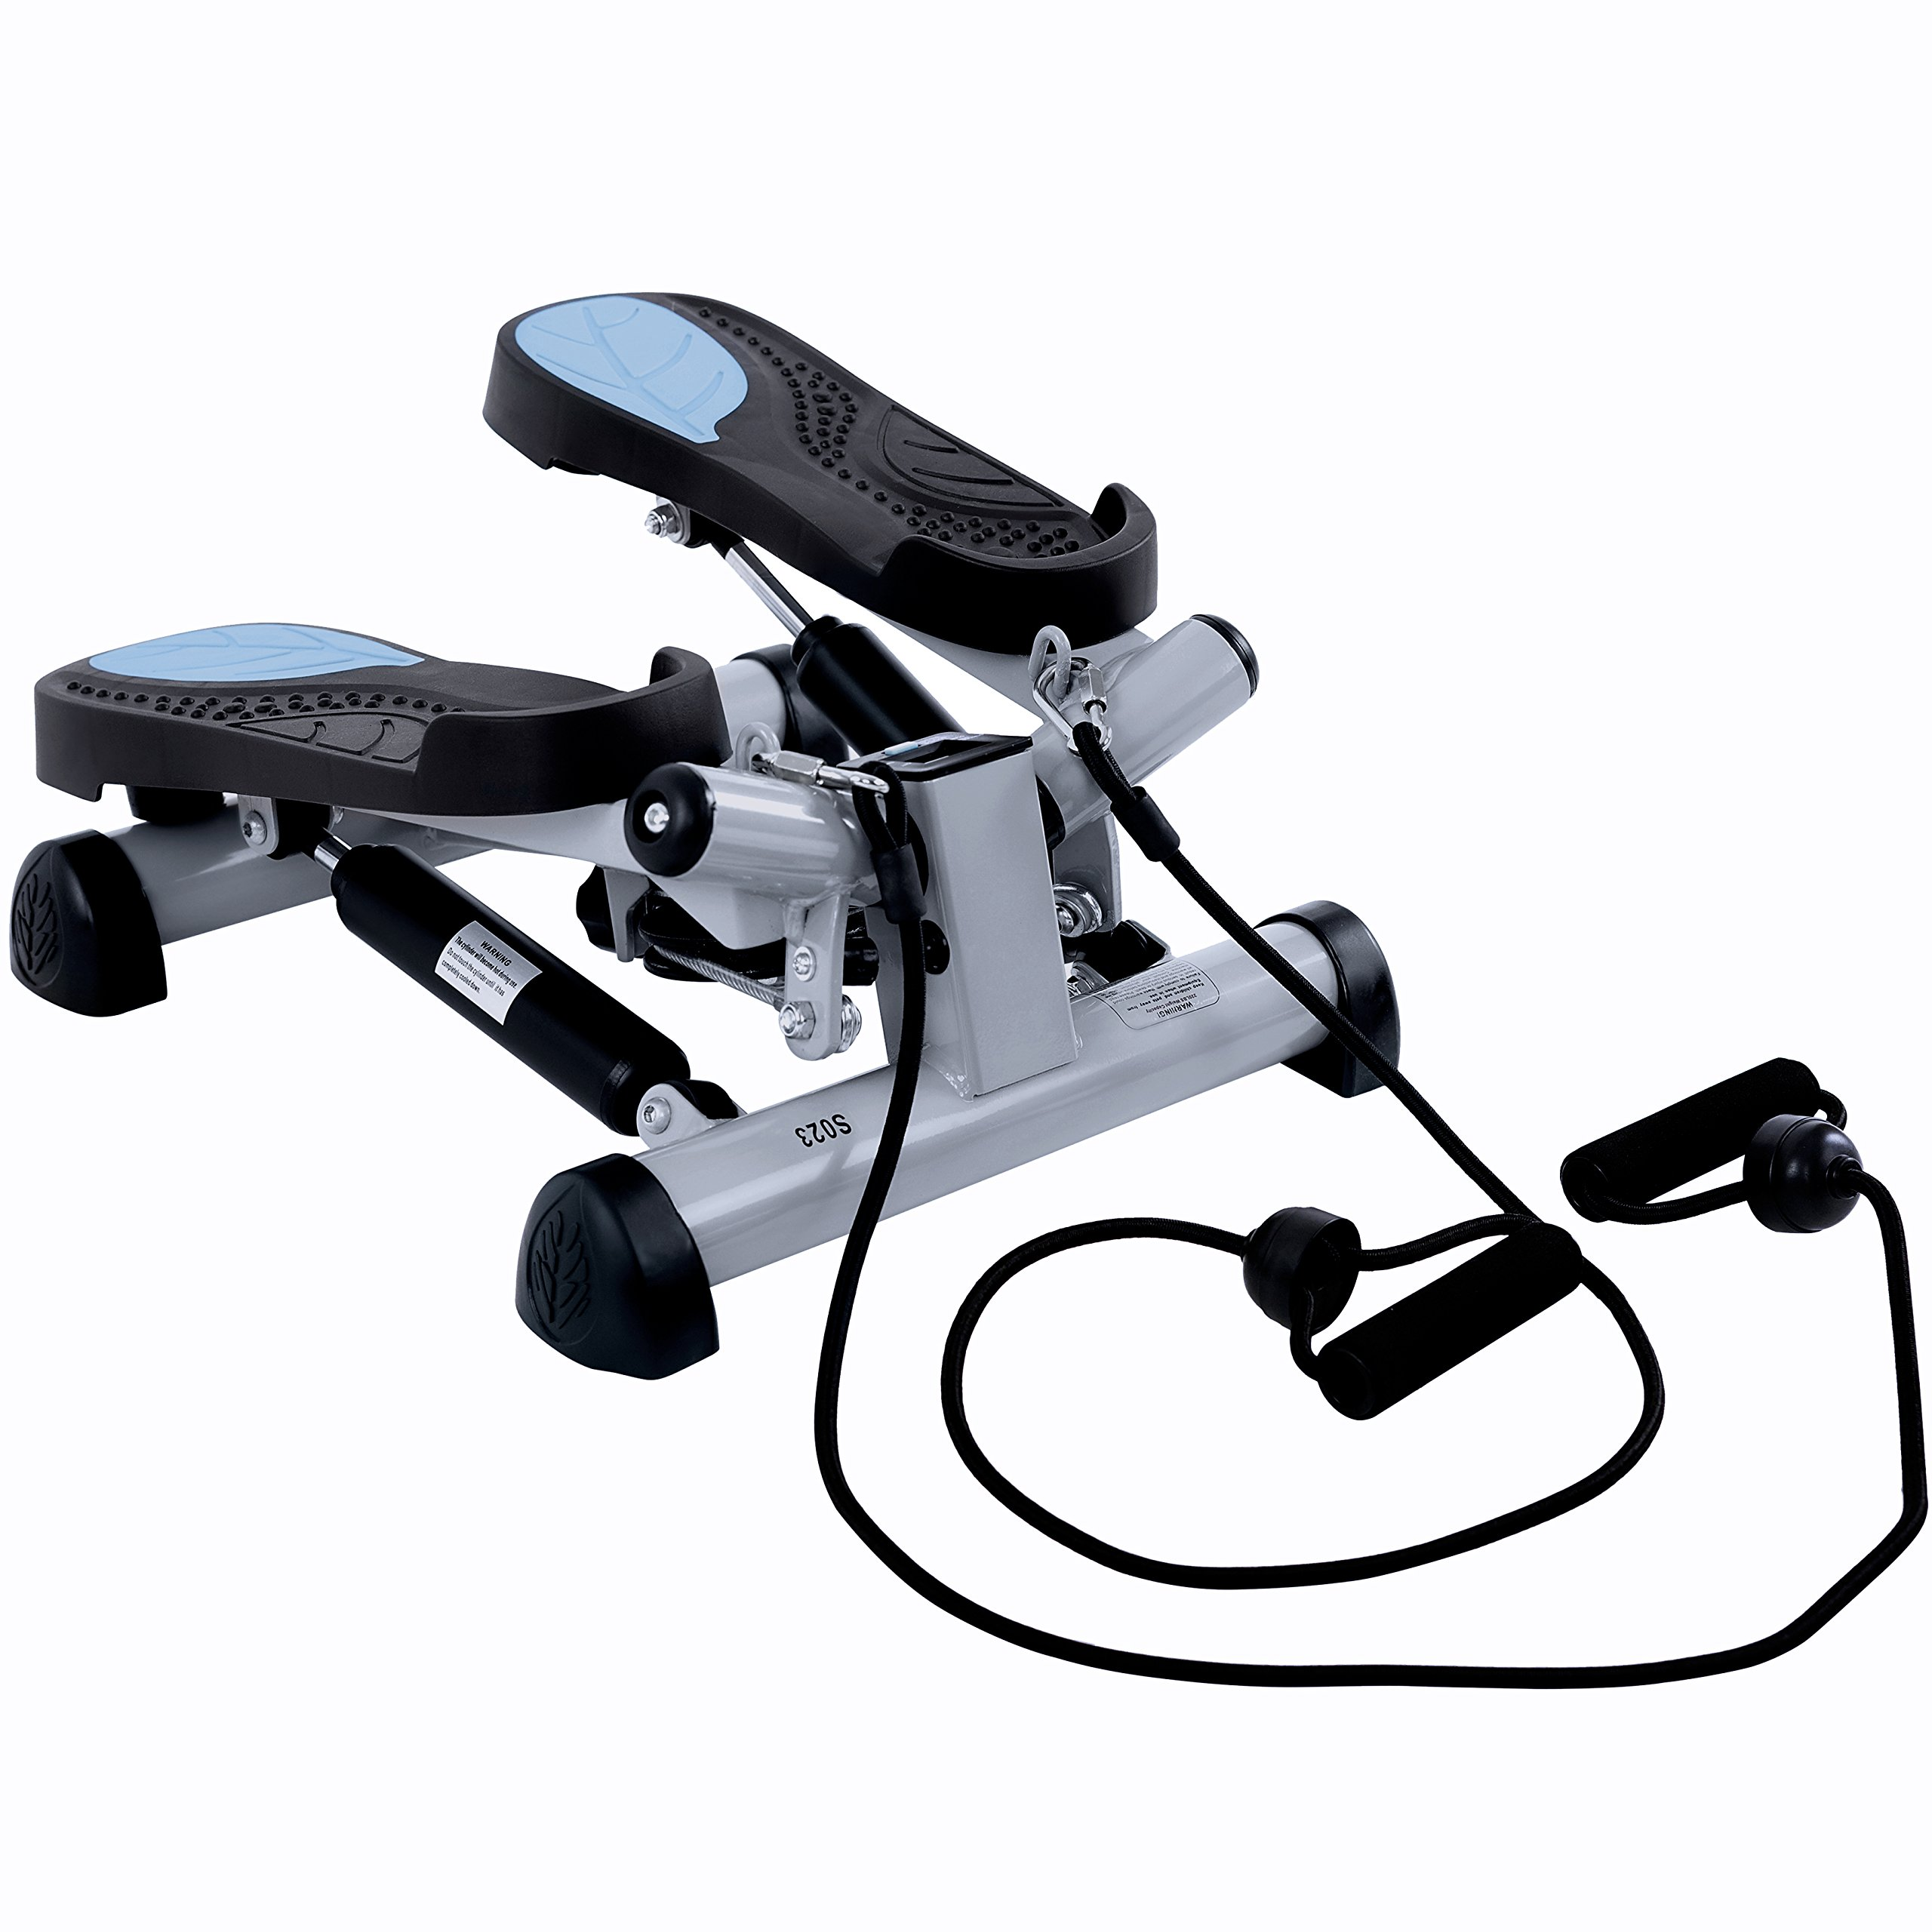 EFITMENT Twist Fitness Stepper Step Machine with Resistance Bands for Fitness & Exercise - S023 by EFITMENT